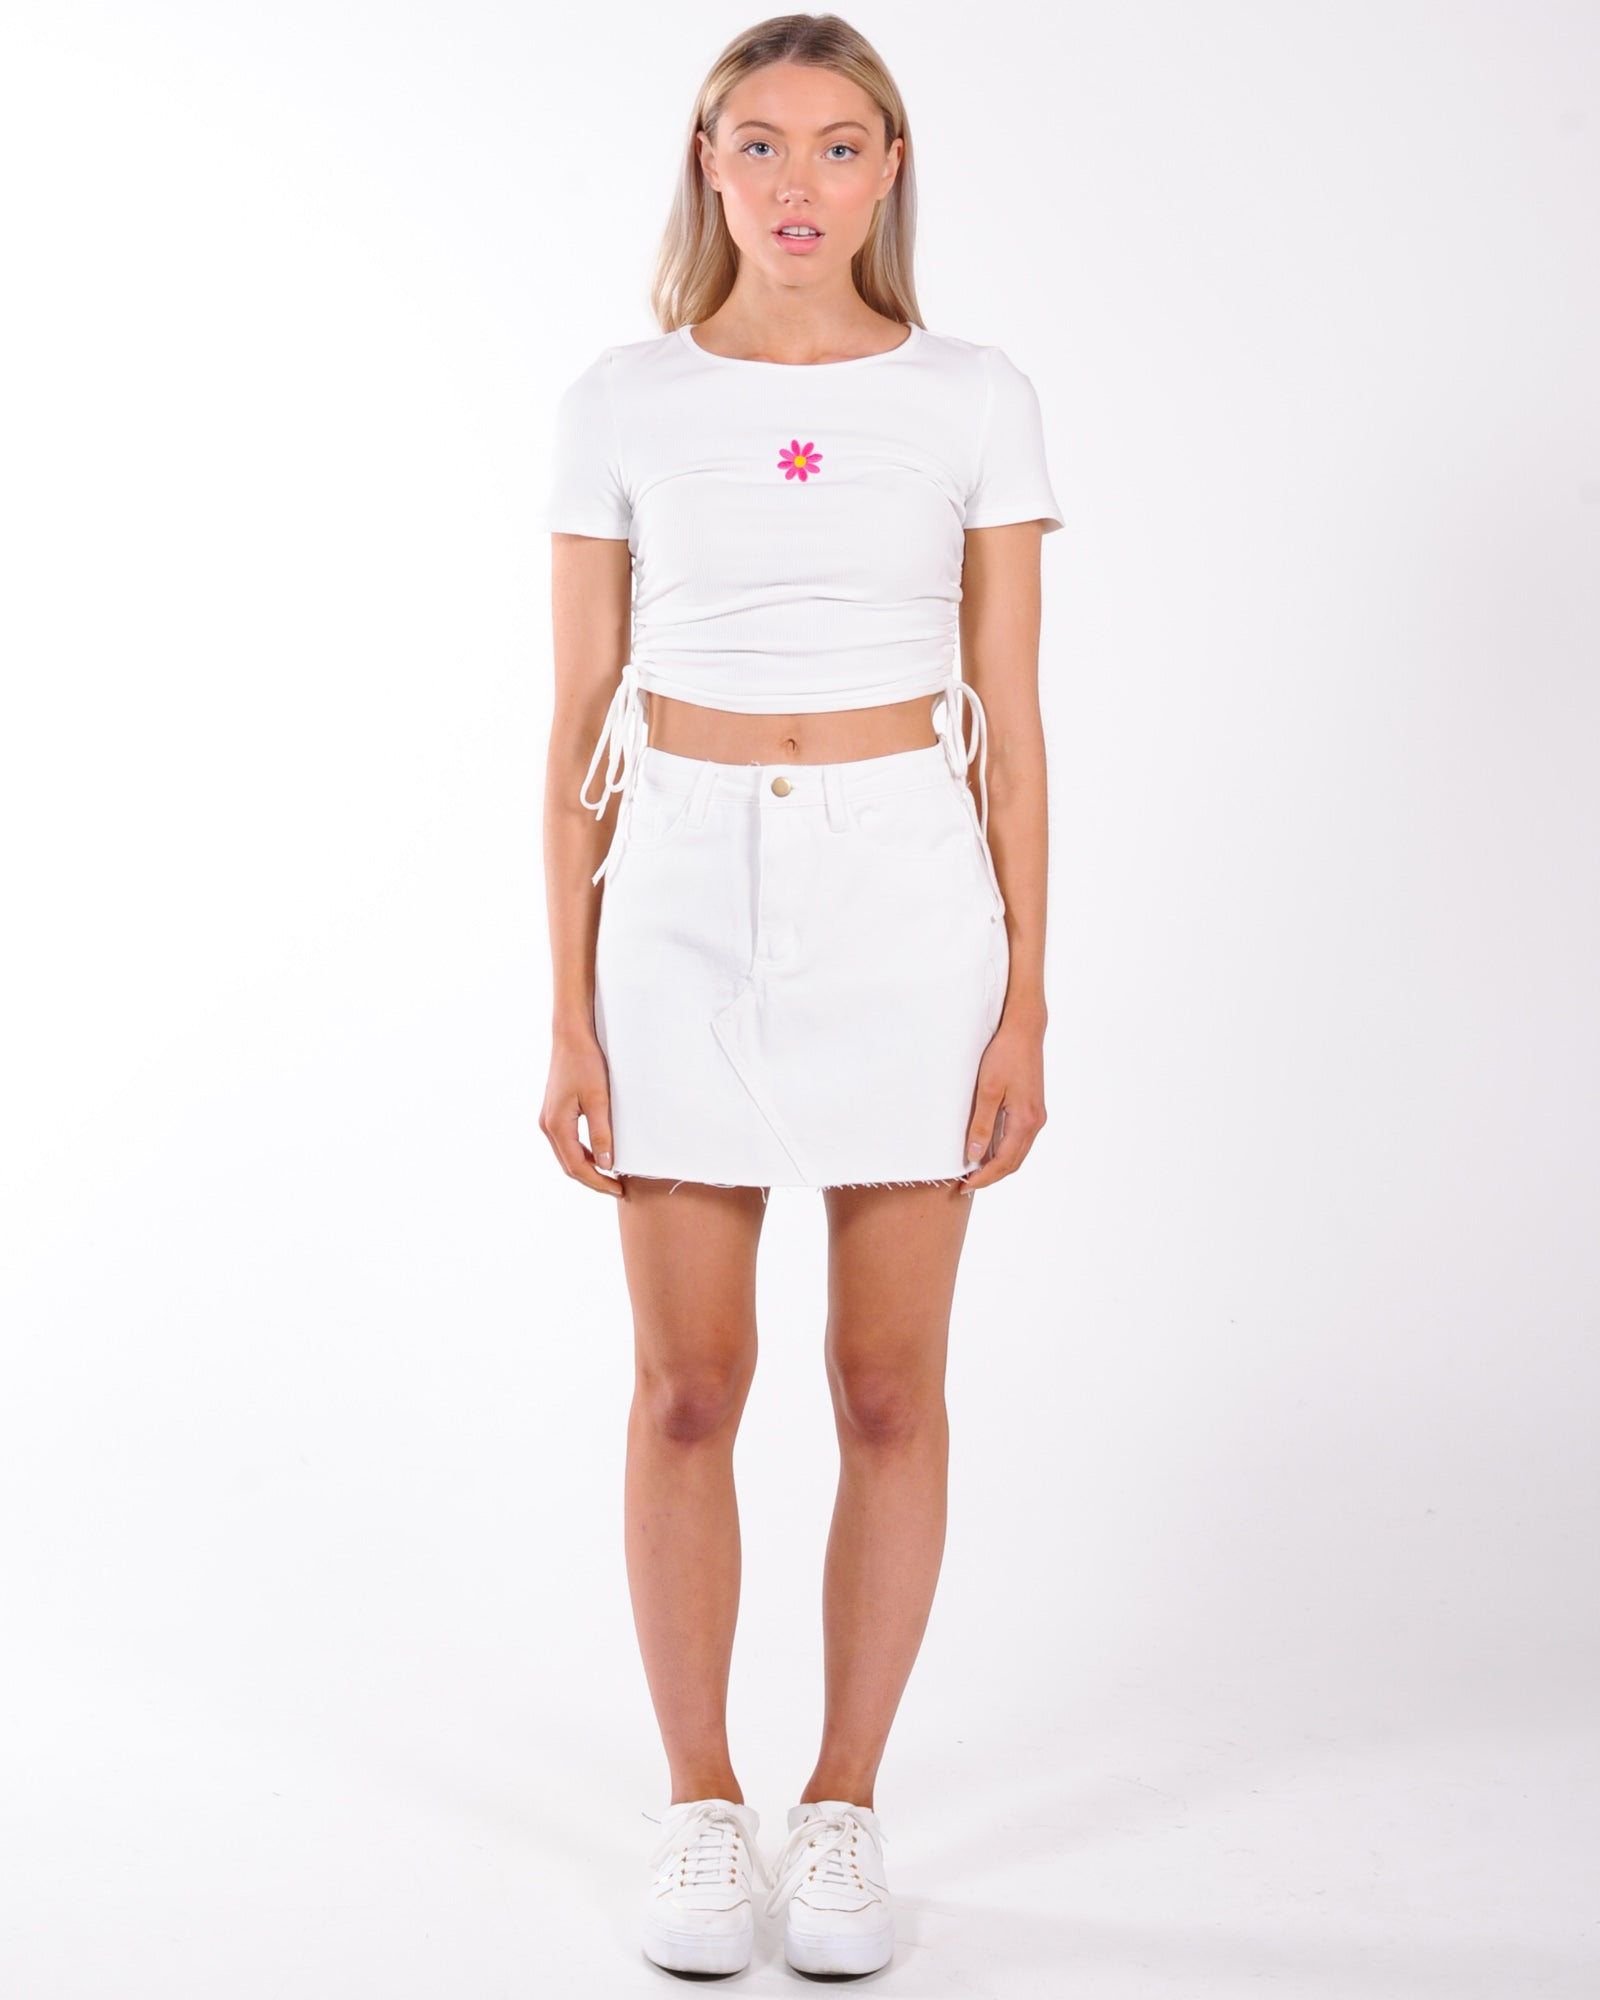 Flower Power Ribbed Top - White